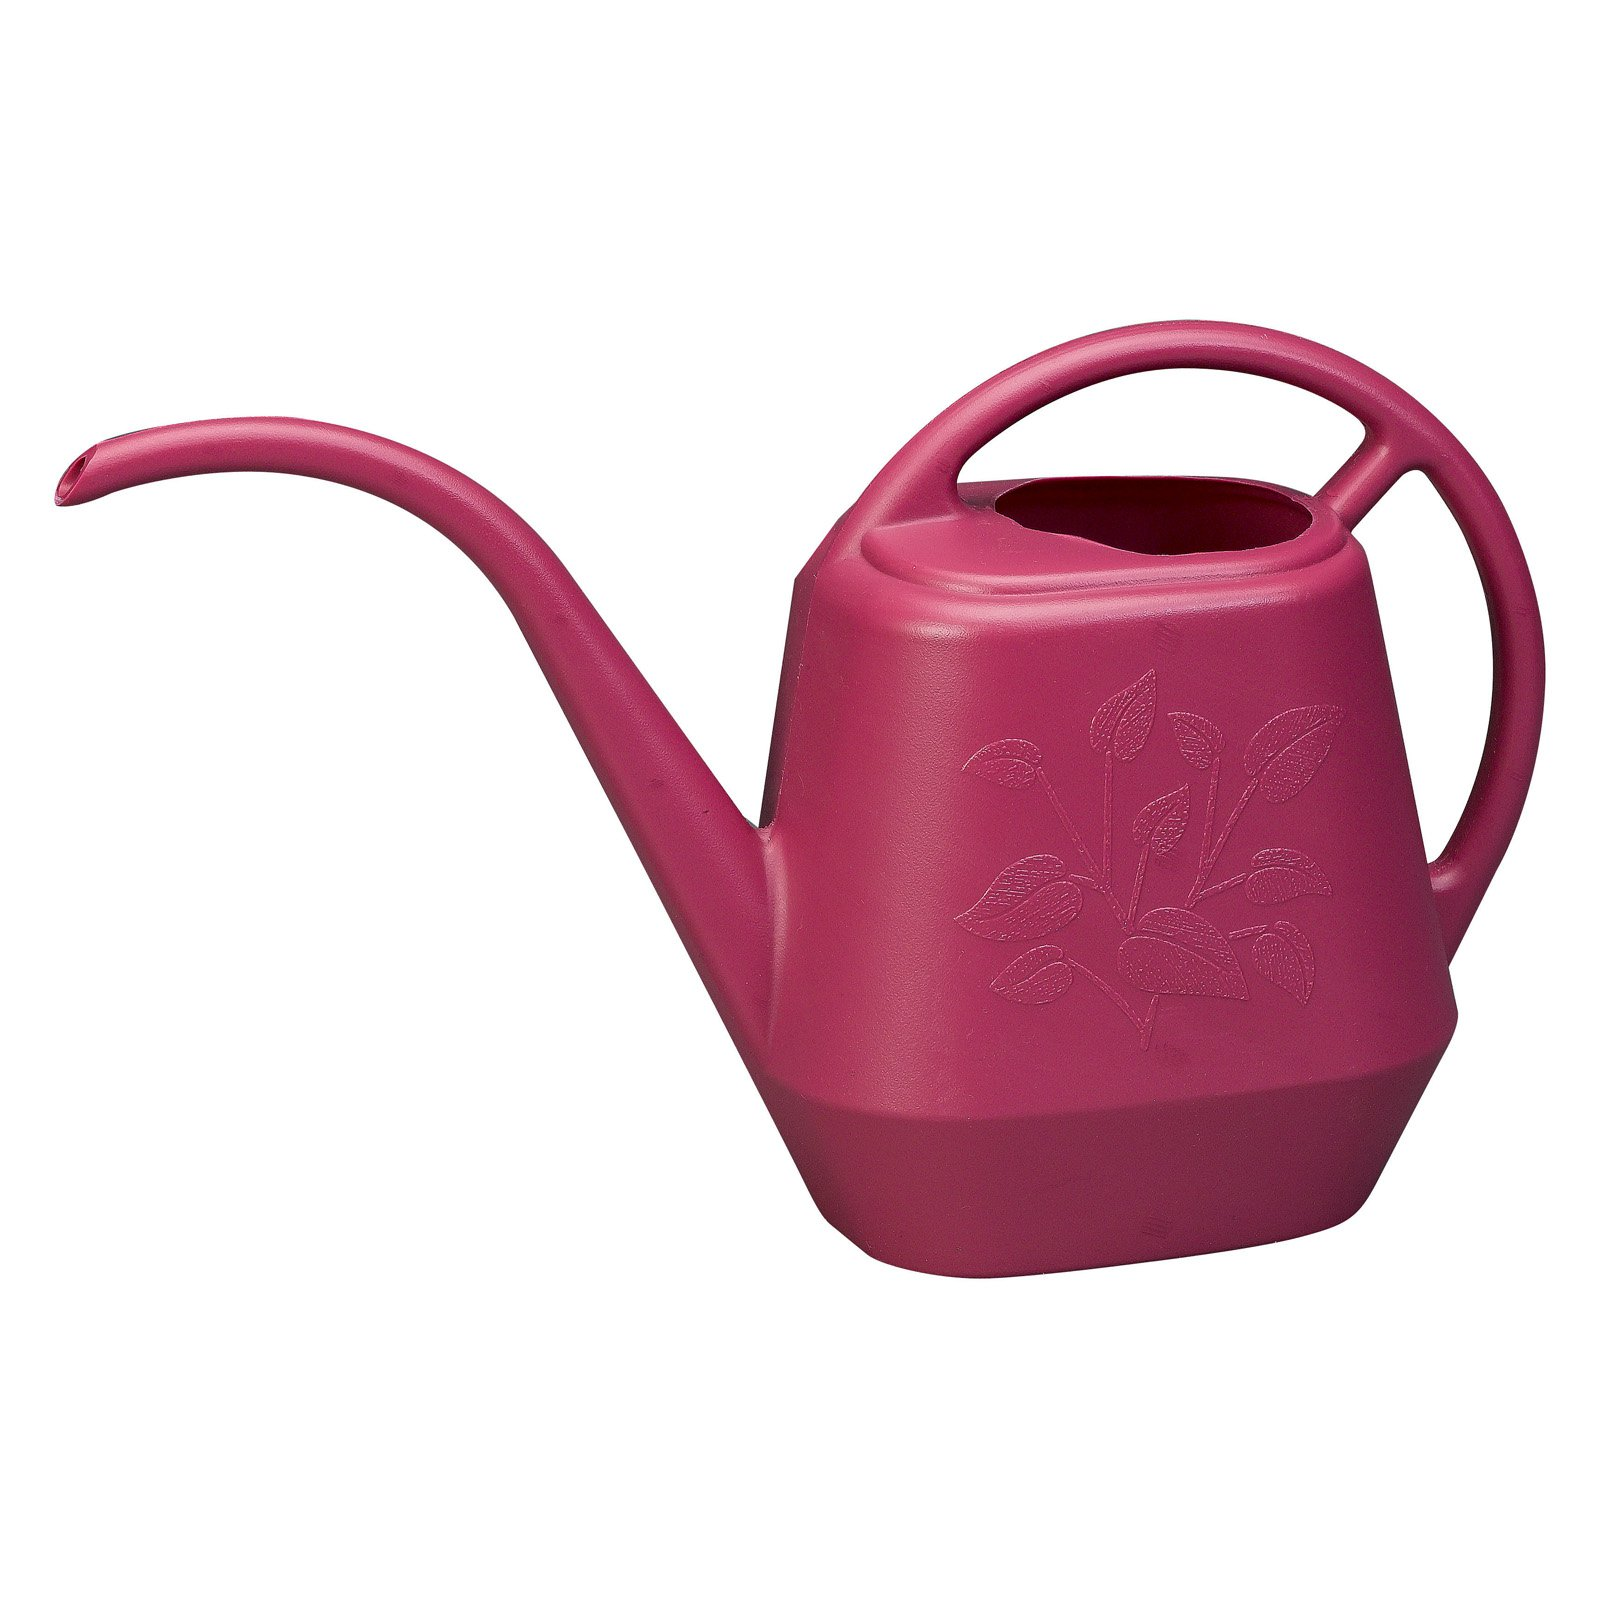 Bloem 36 oz. Aqua Rite Watering Can Set of 12 by Bloem